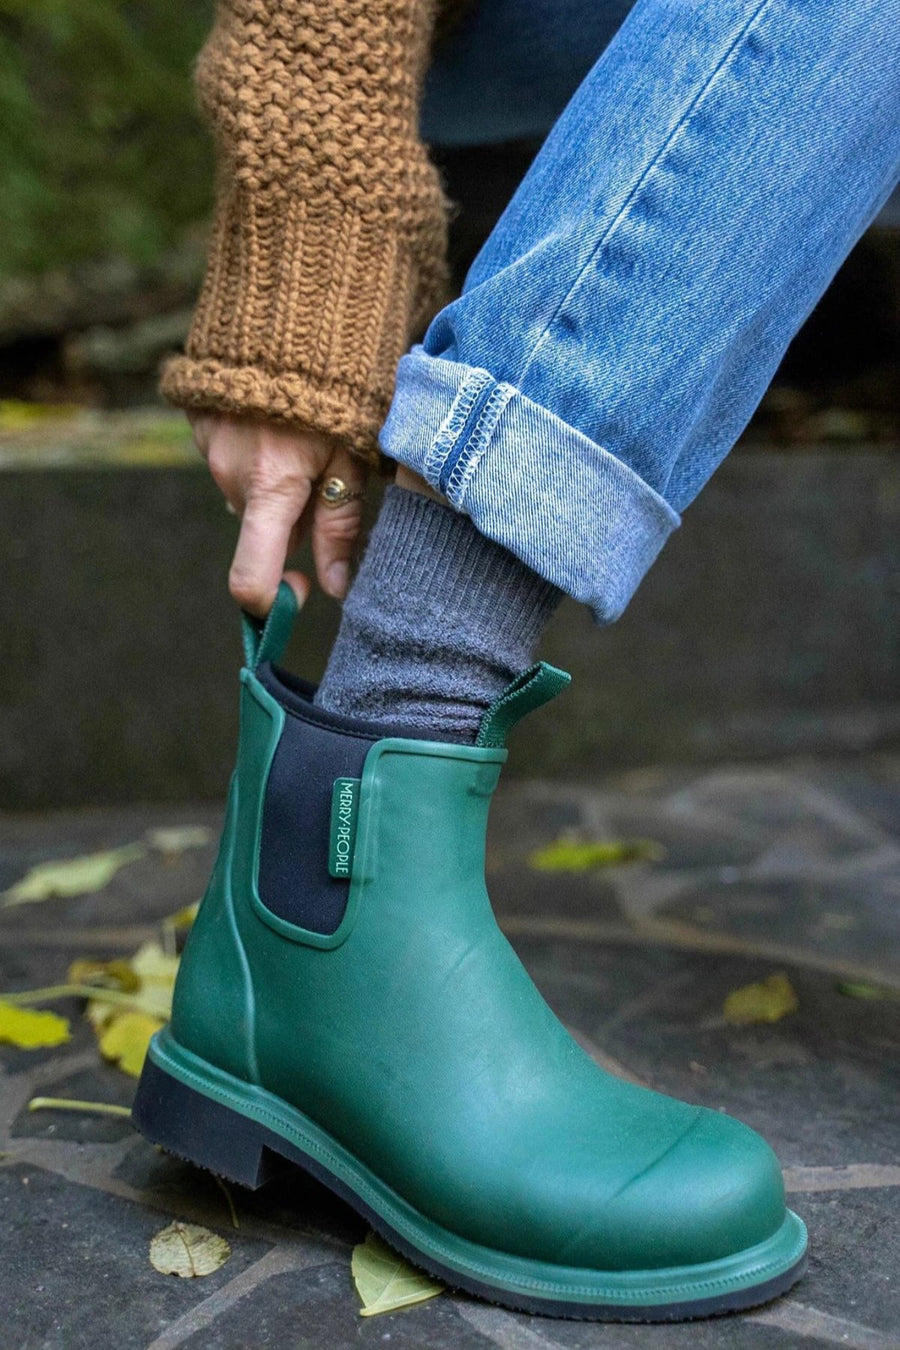 Bobbi Gumboot - Alpine Green - Shop Online At Mookah - mookah.com.au